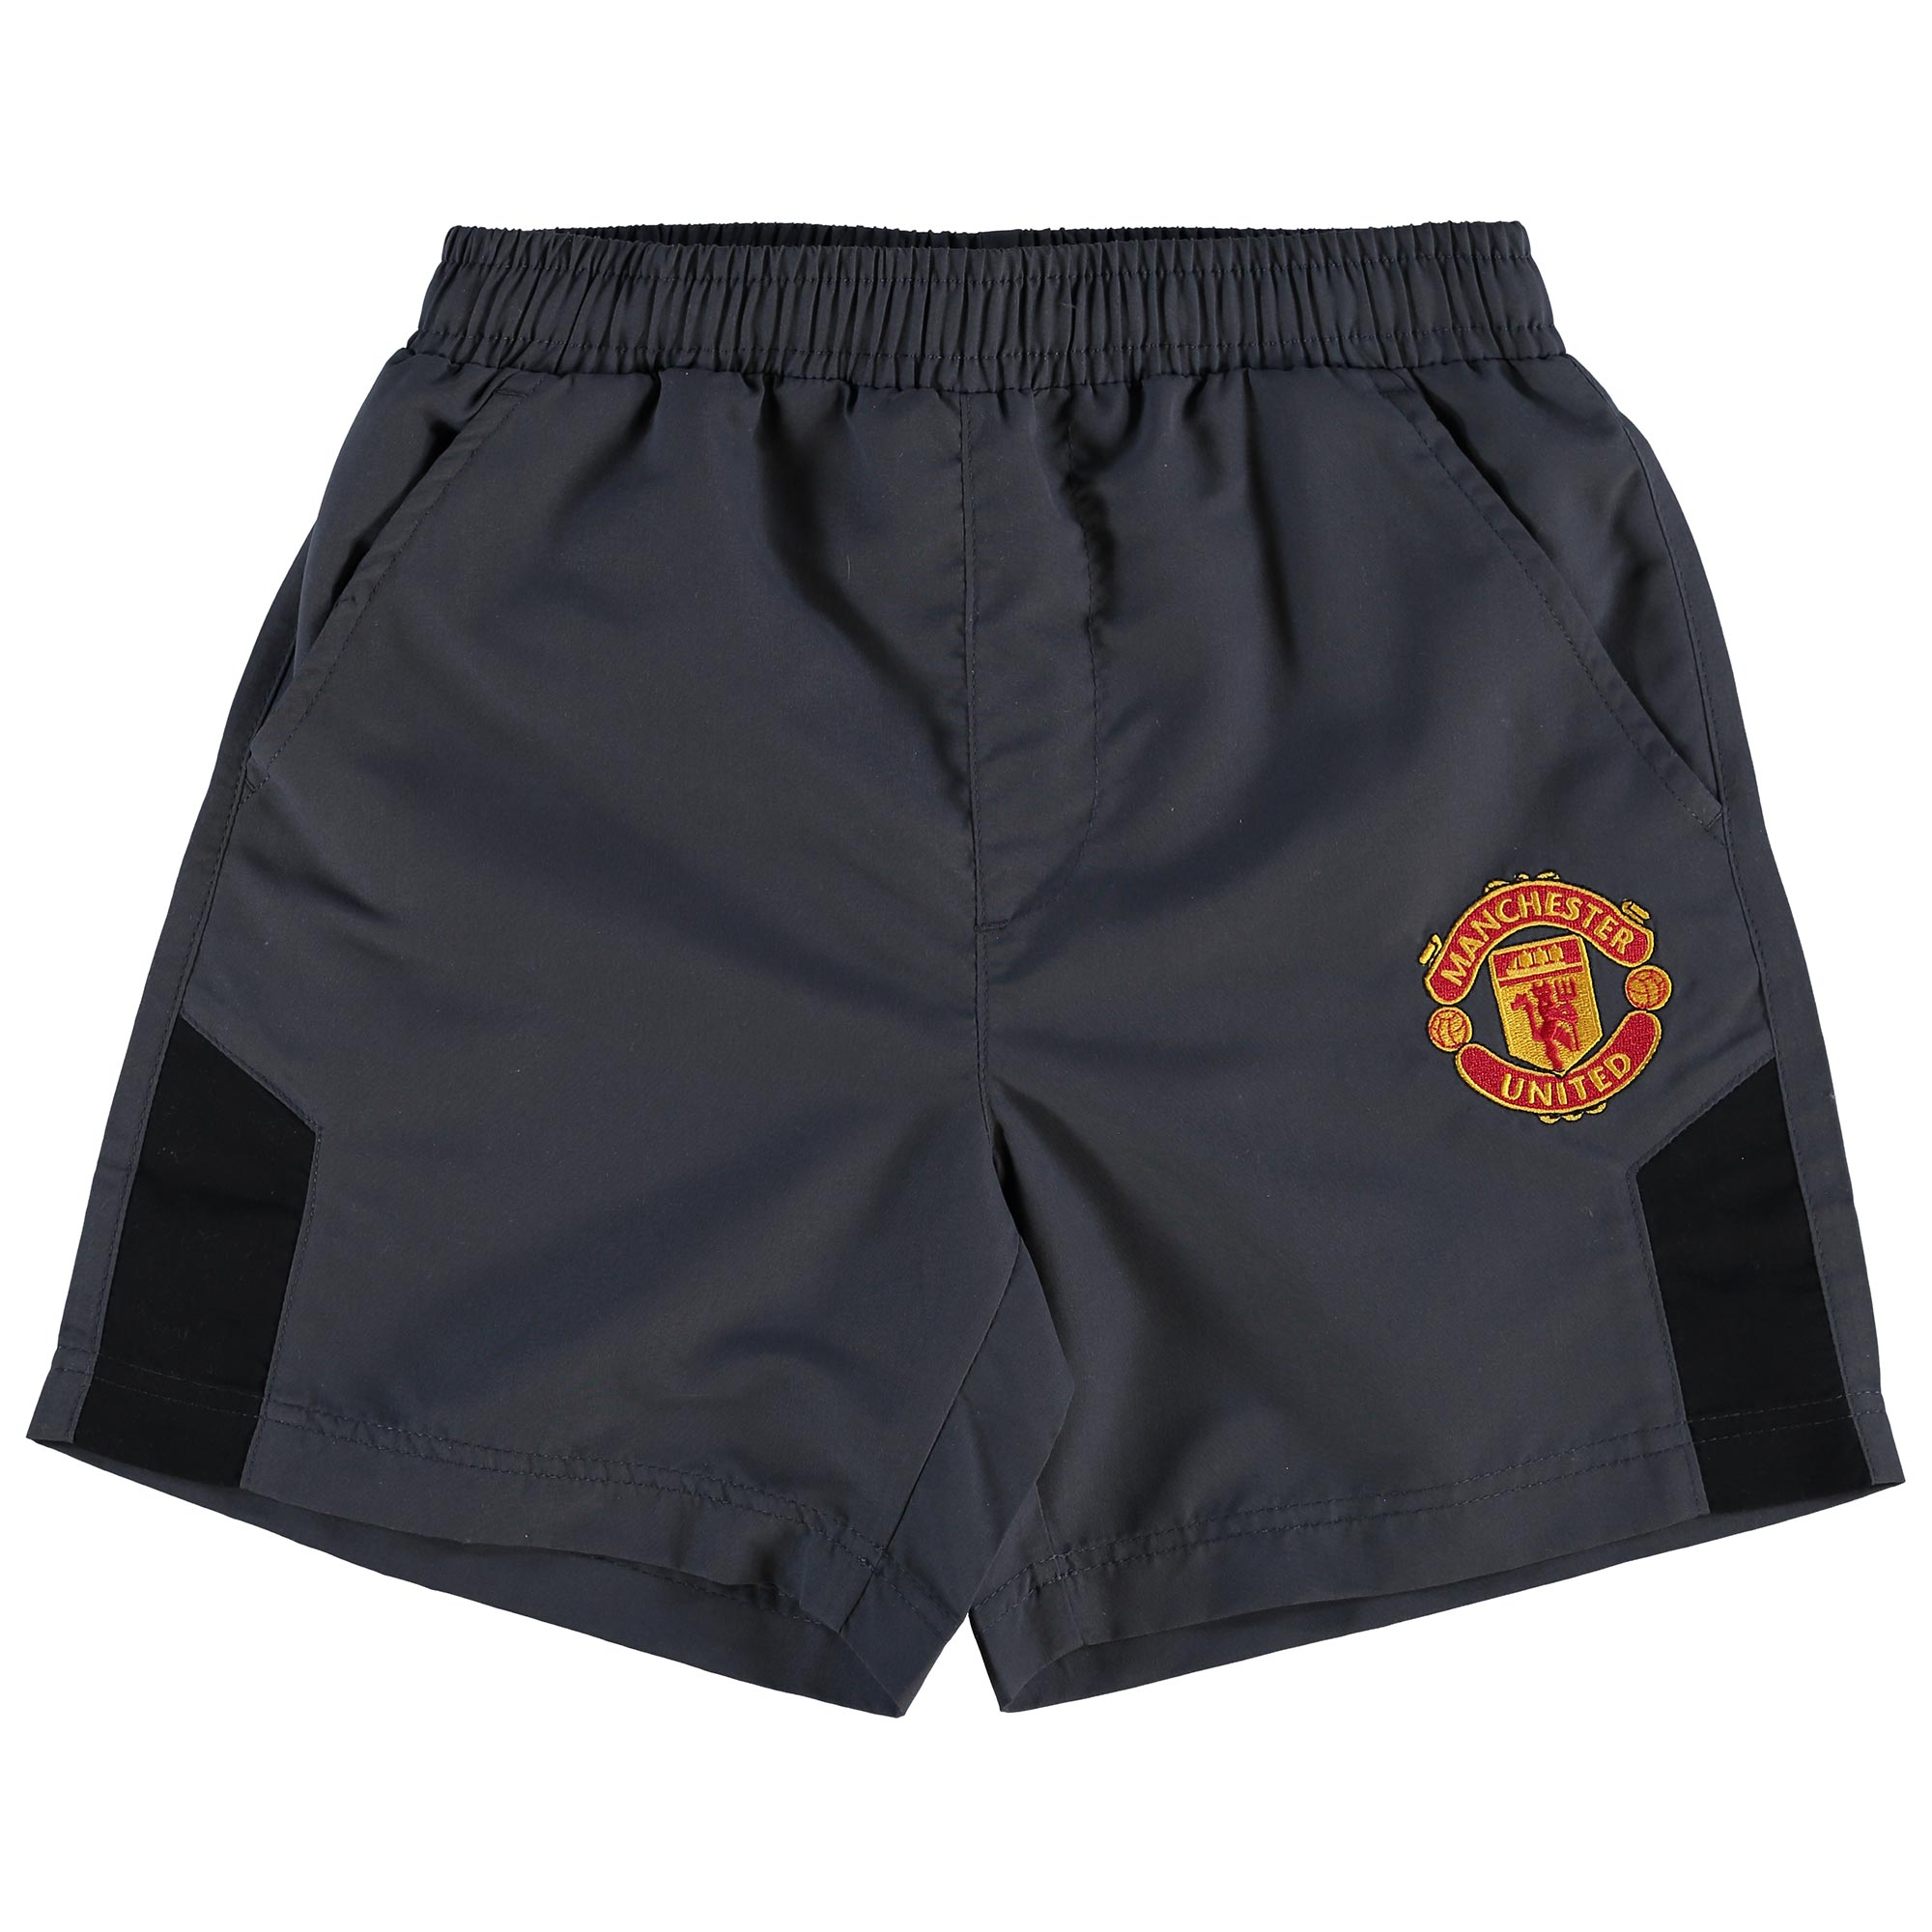 Manchester United Essential Shorts - Charcoal - Kids